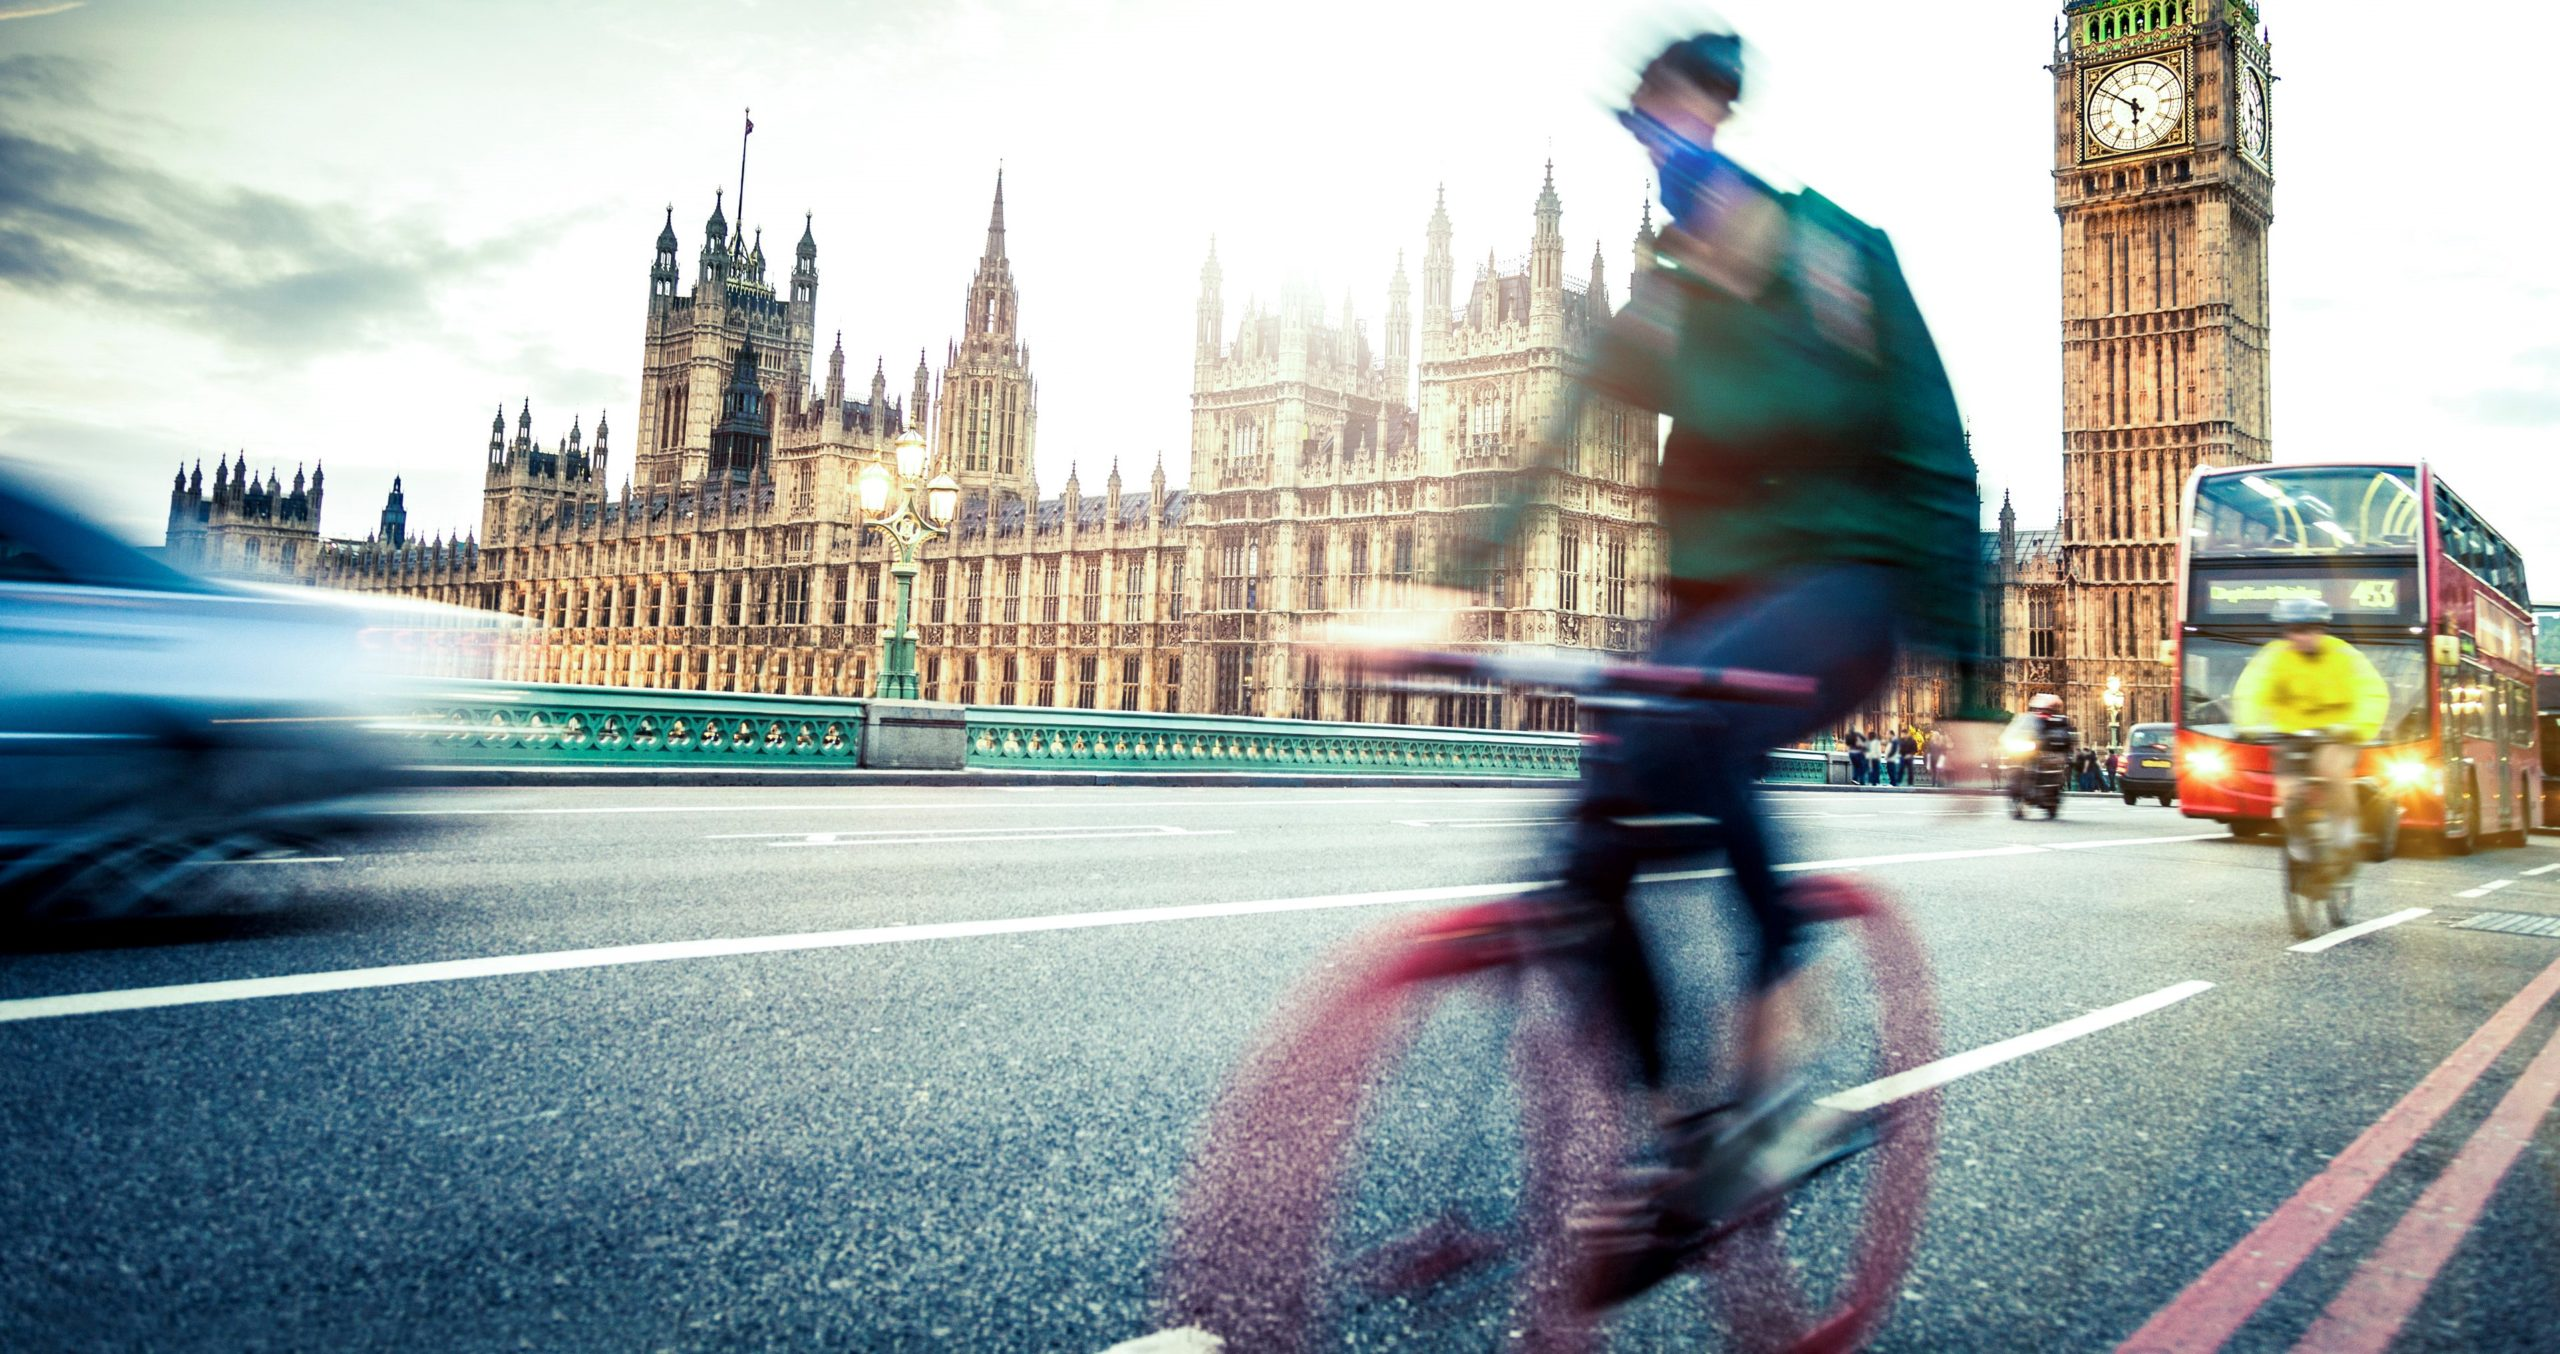 An image of people utilizing different commuting options in London, including cycling.